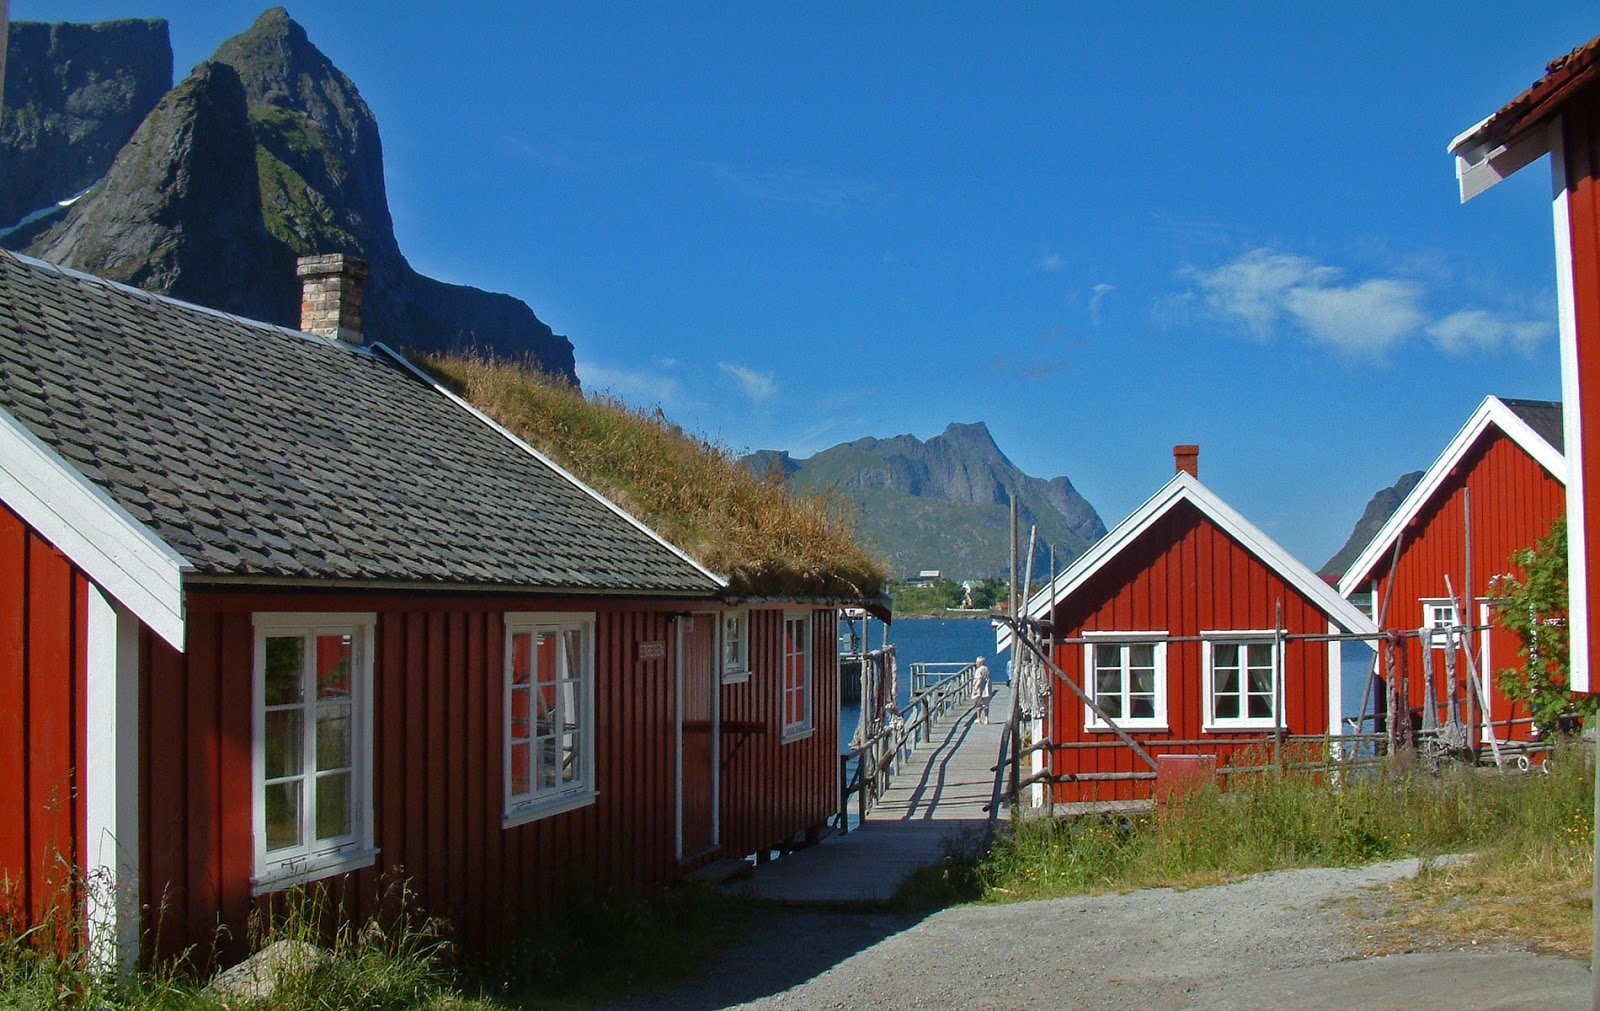 More of scenic Reine, Norway.